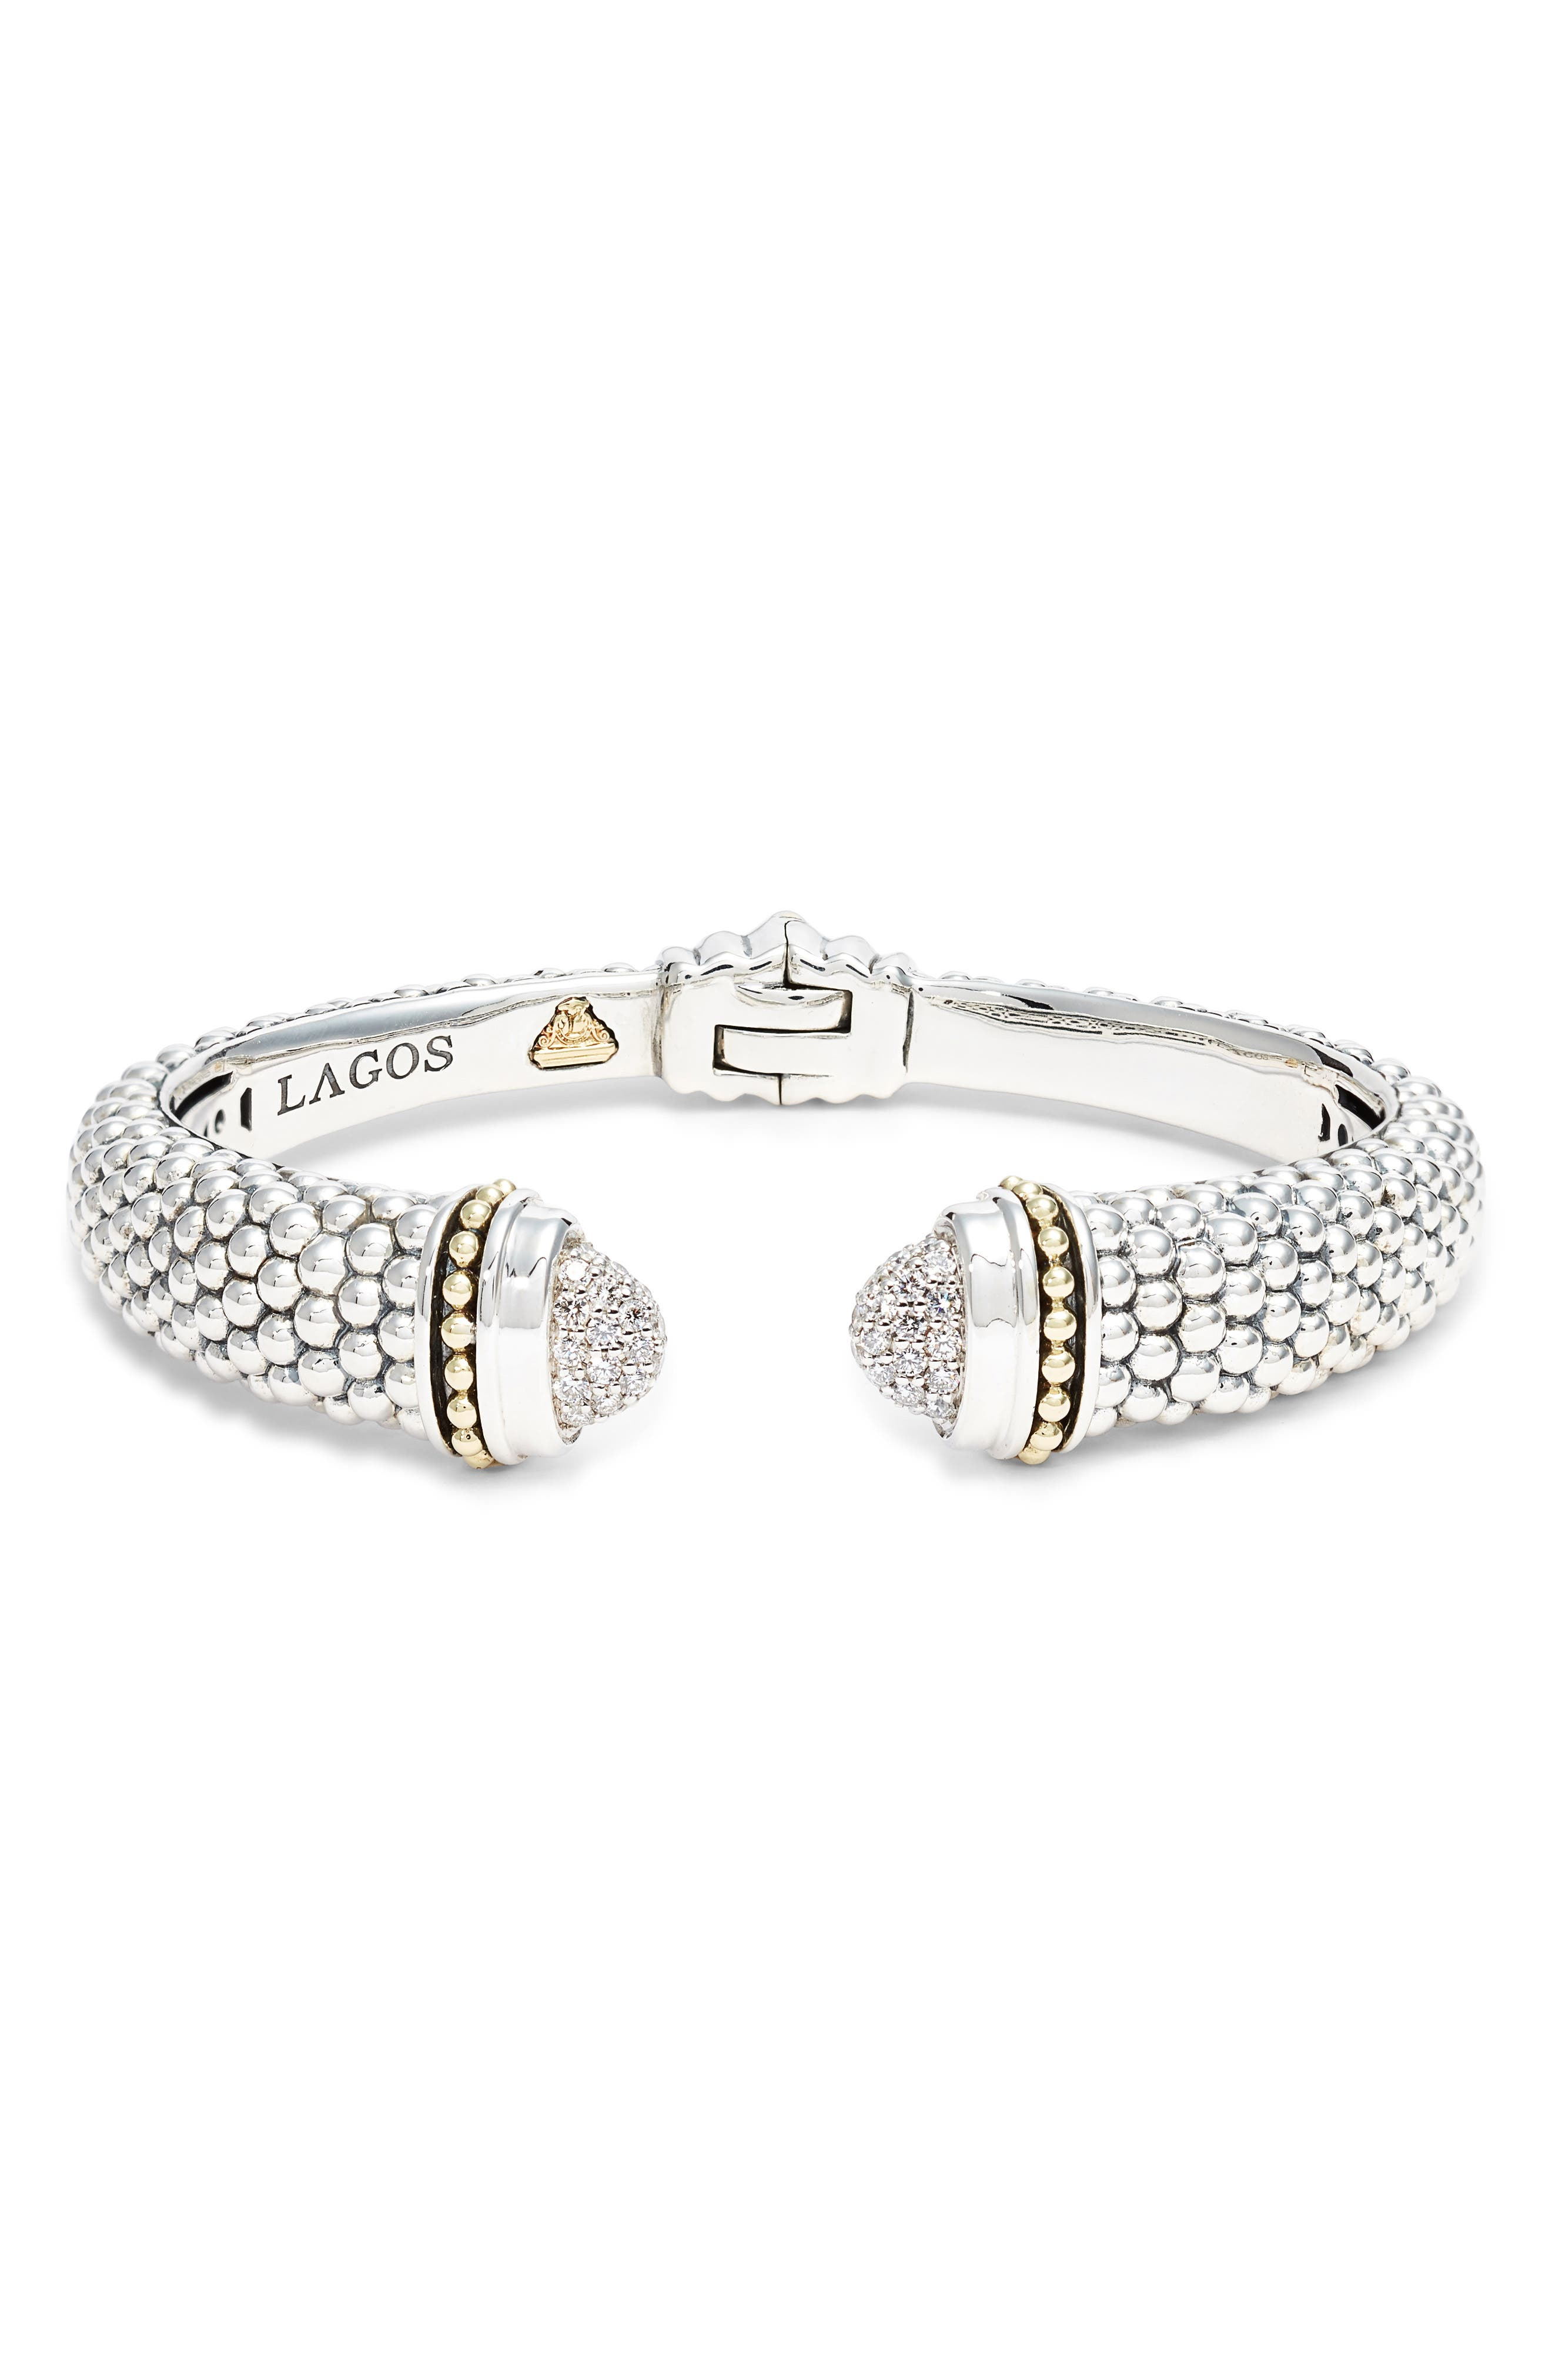 Caviar Diamond Cuff,                             Main thumbnail 1, color,                             SILVER